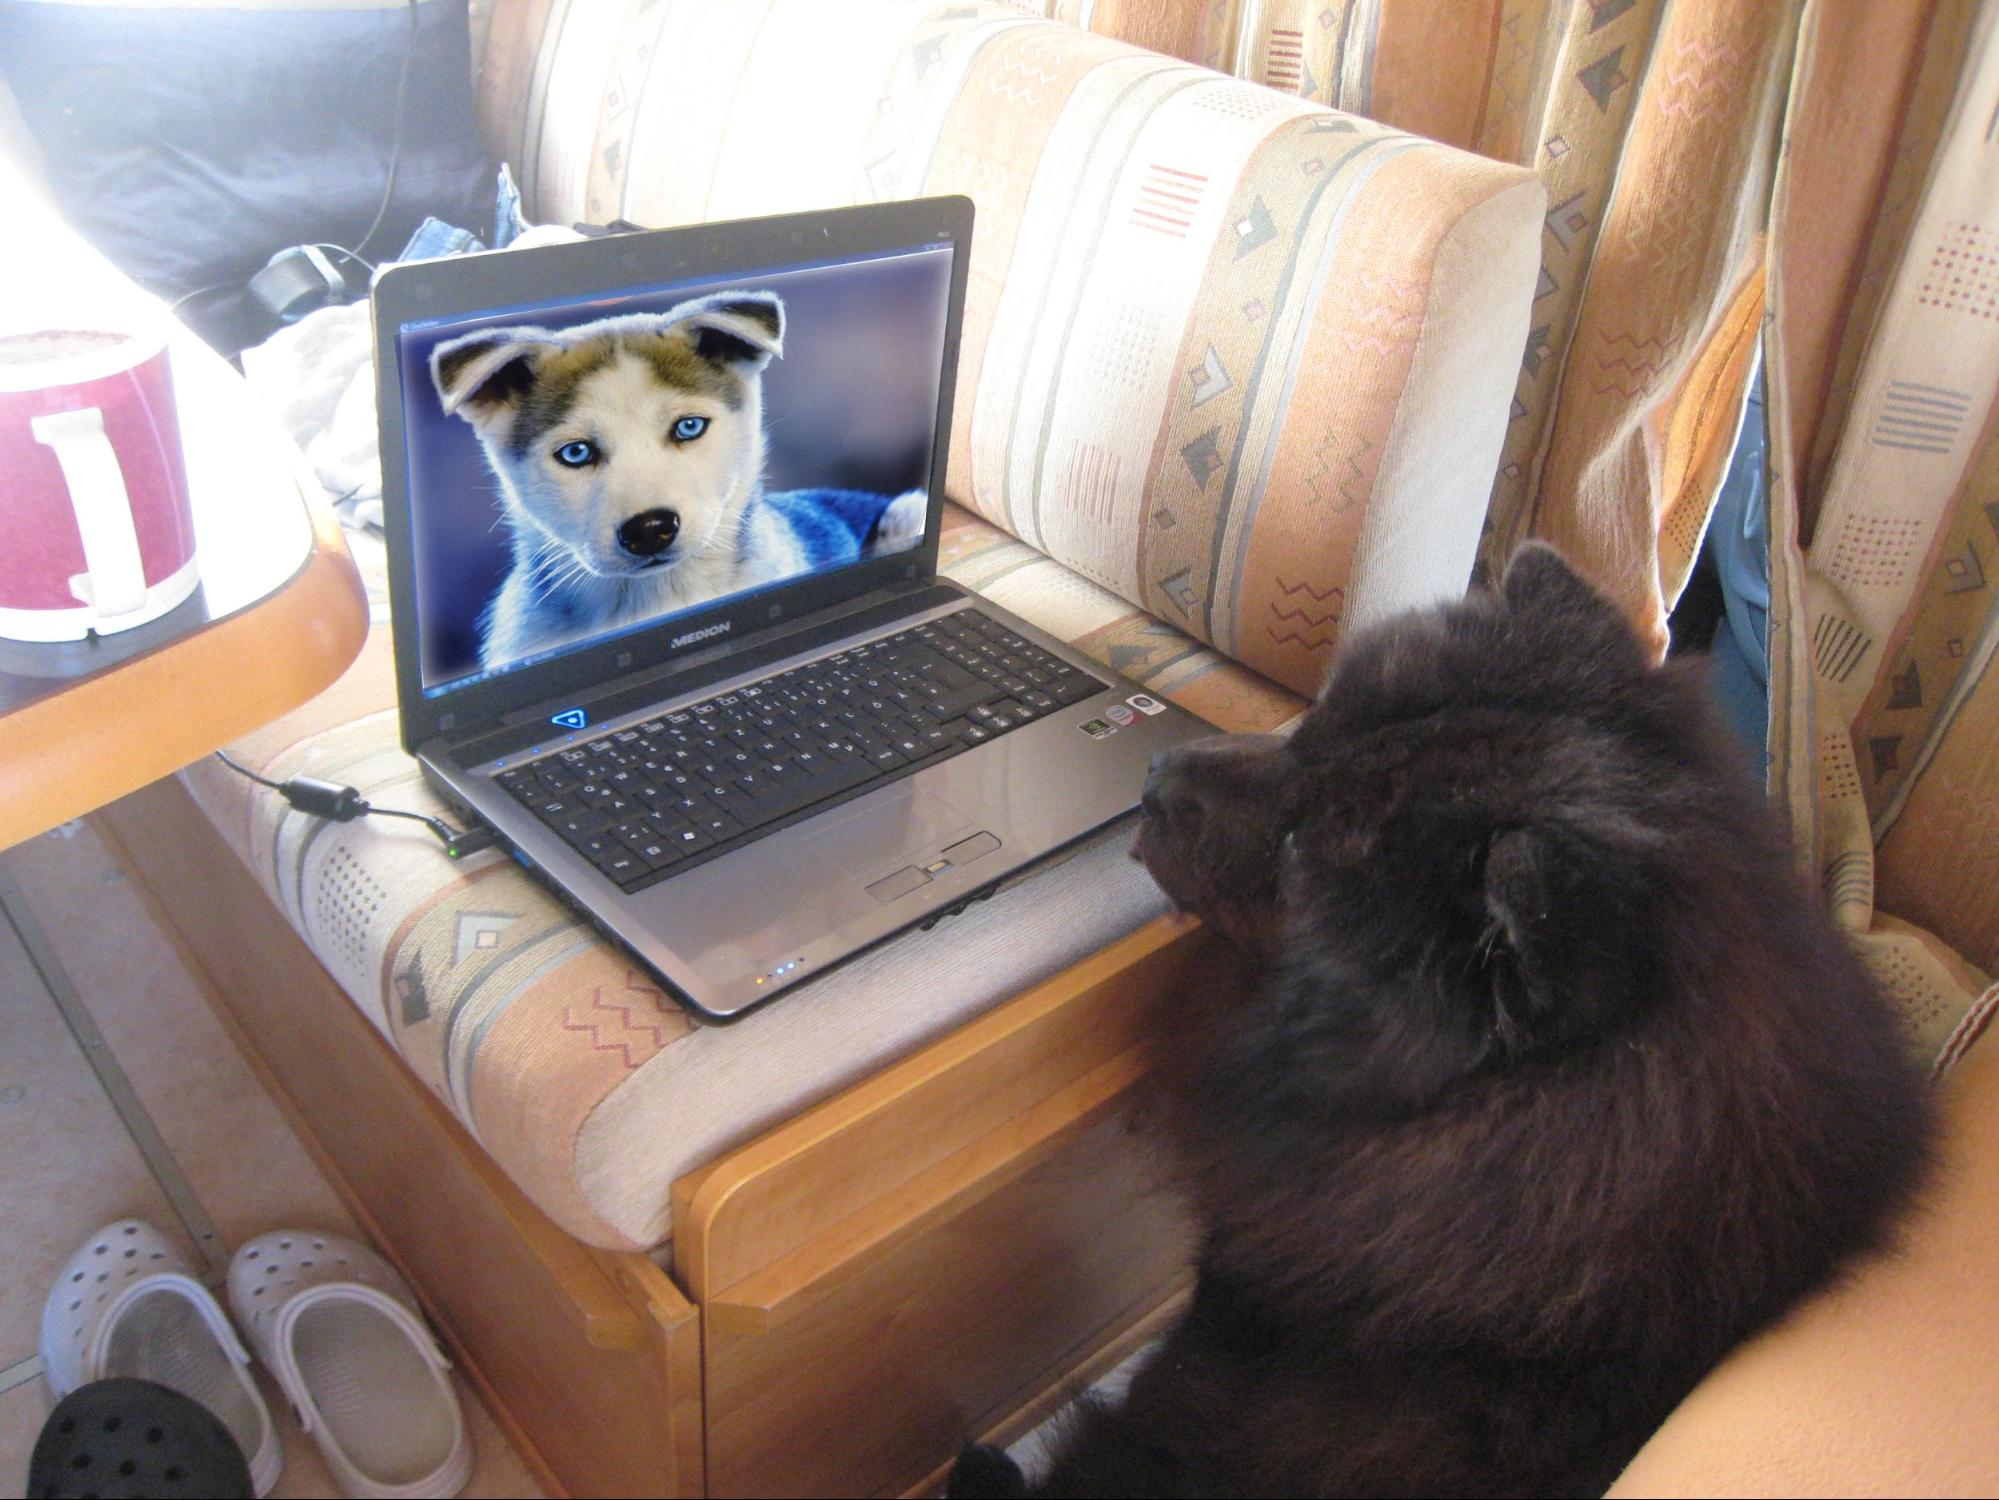 a dog video-chatting with another dog.